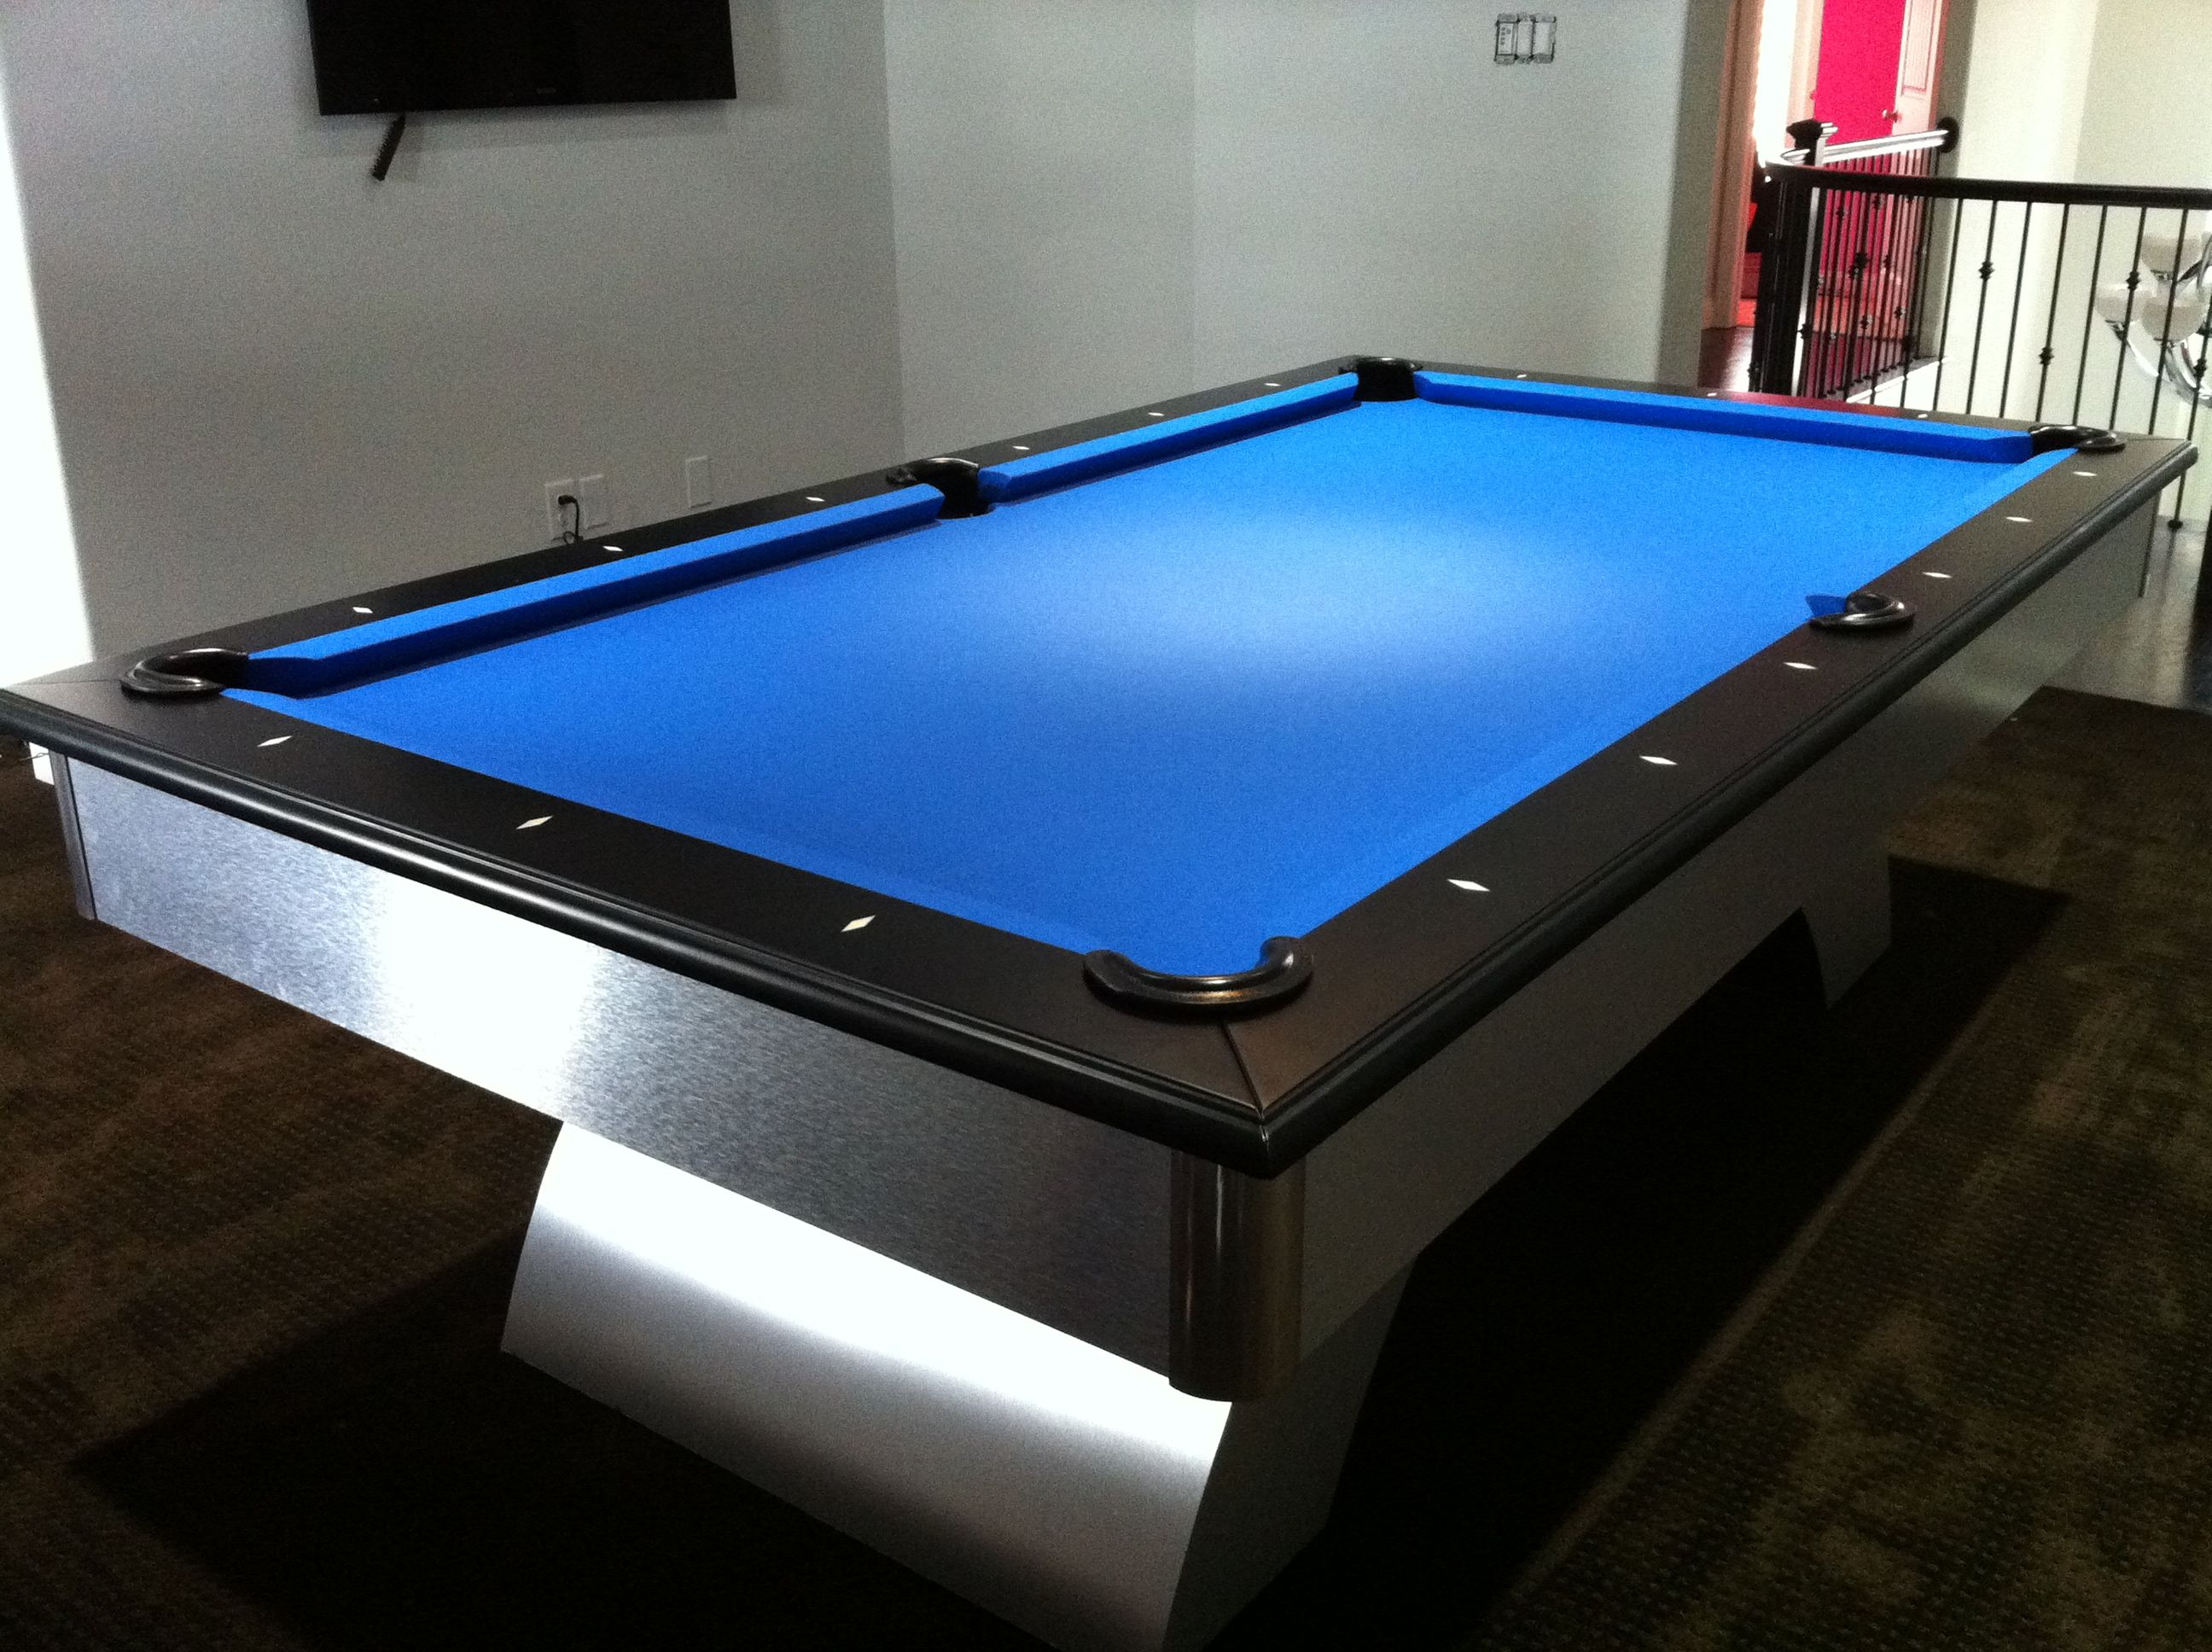 Pool Tables Inch Slate Pool Tables For Sale Sears Has Pool Tables - American heritage pool table prices